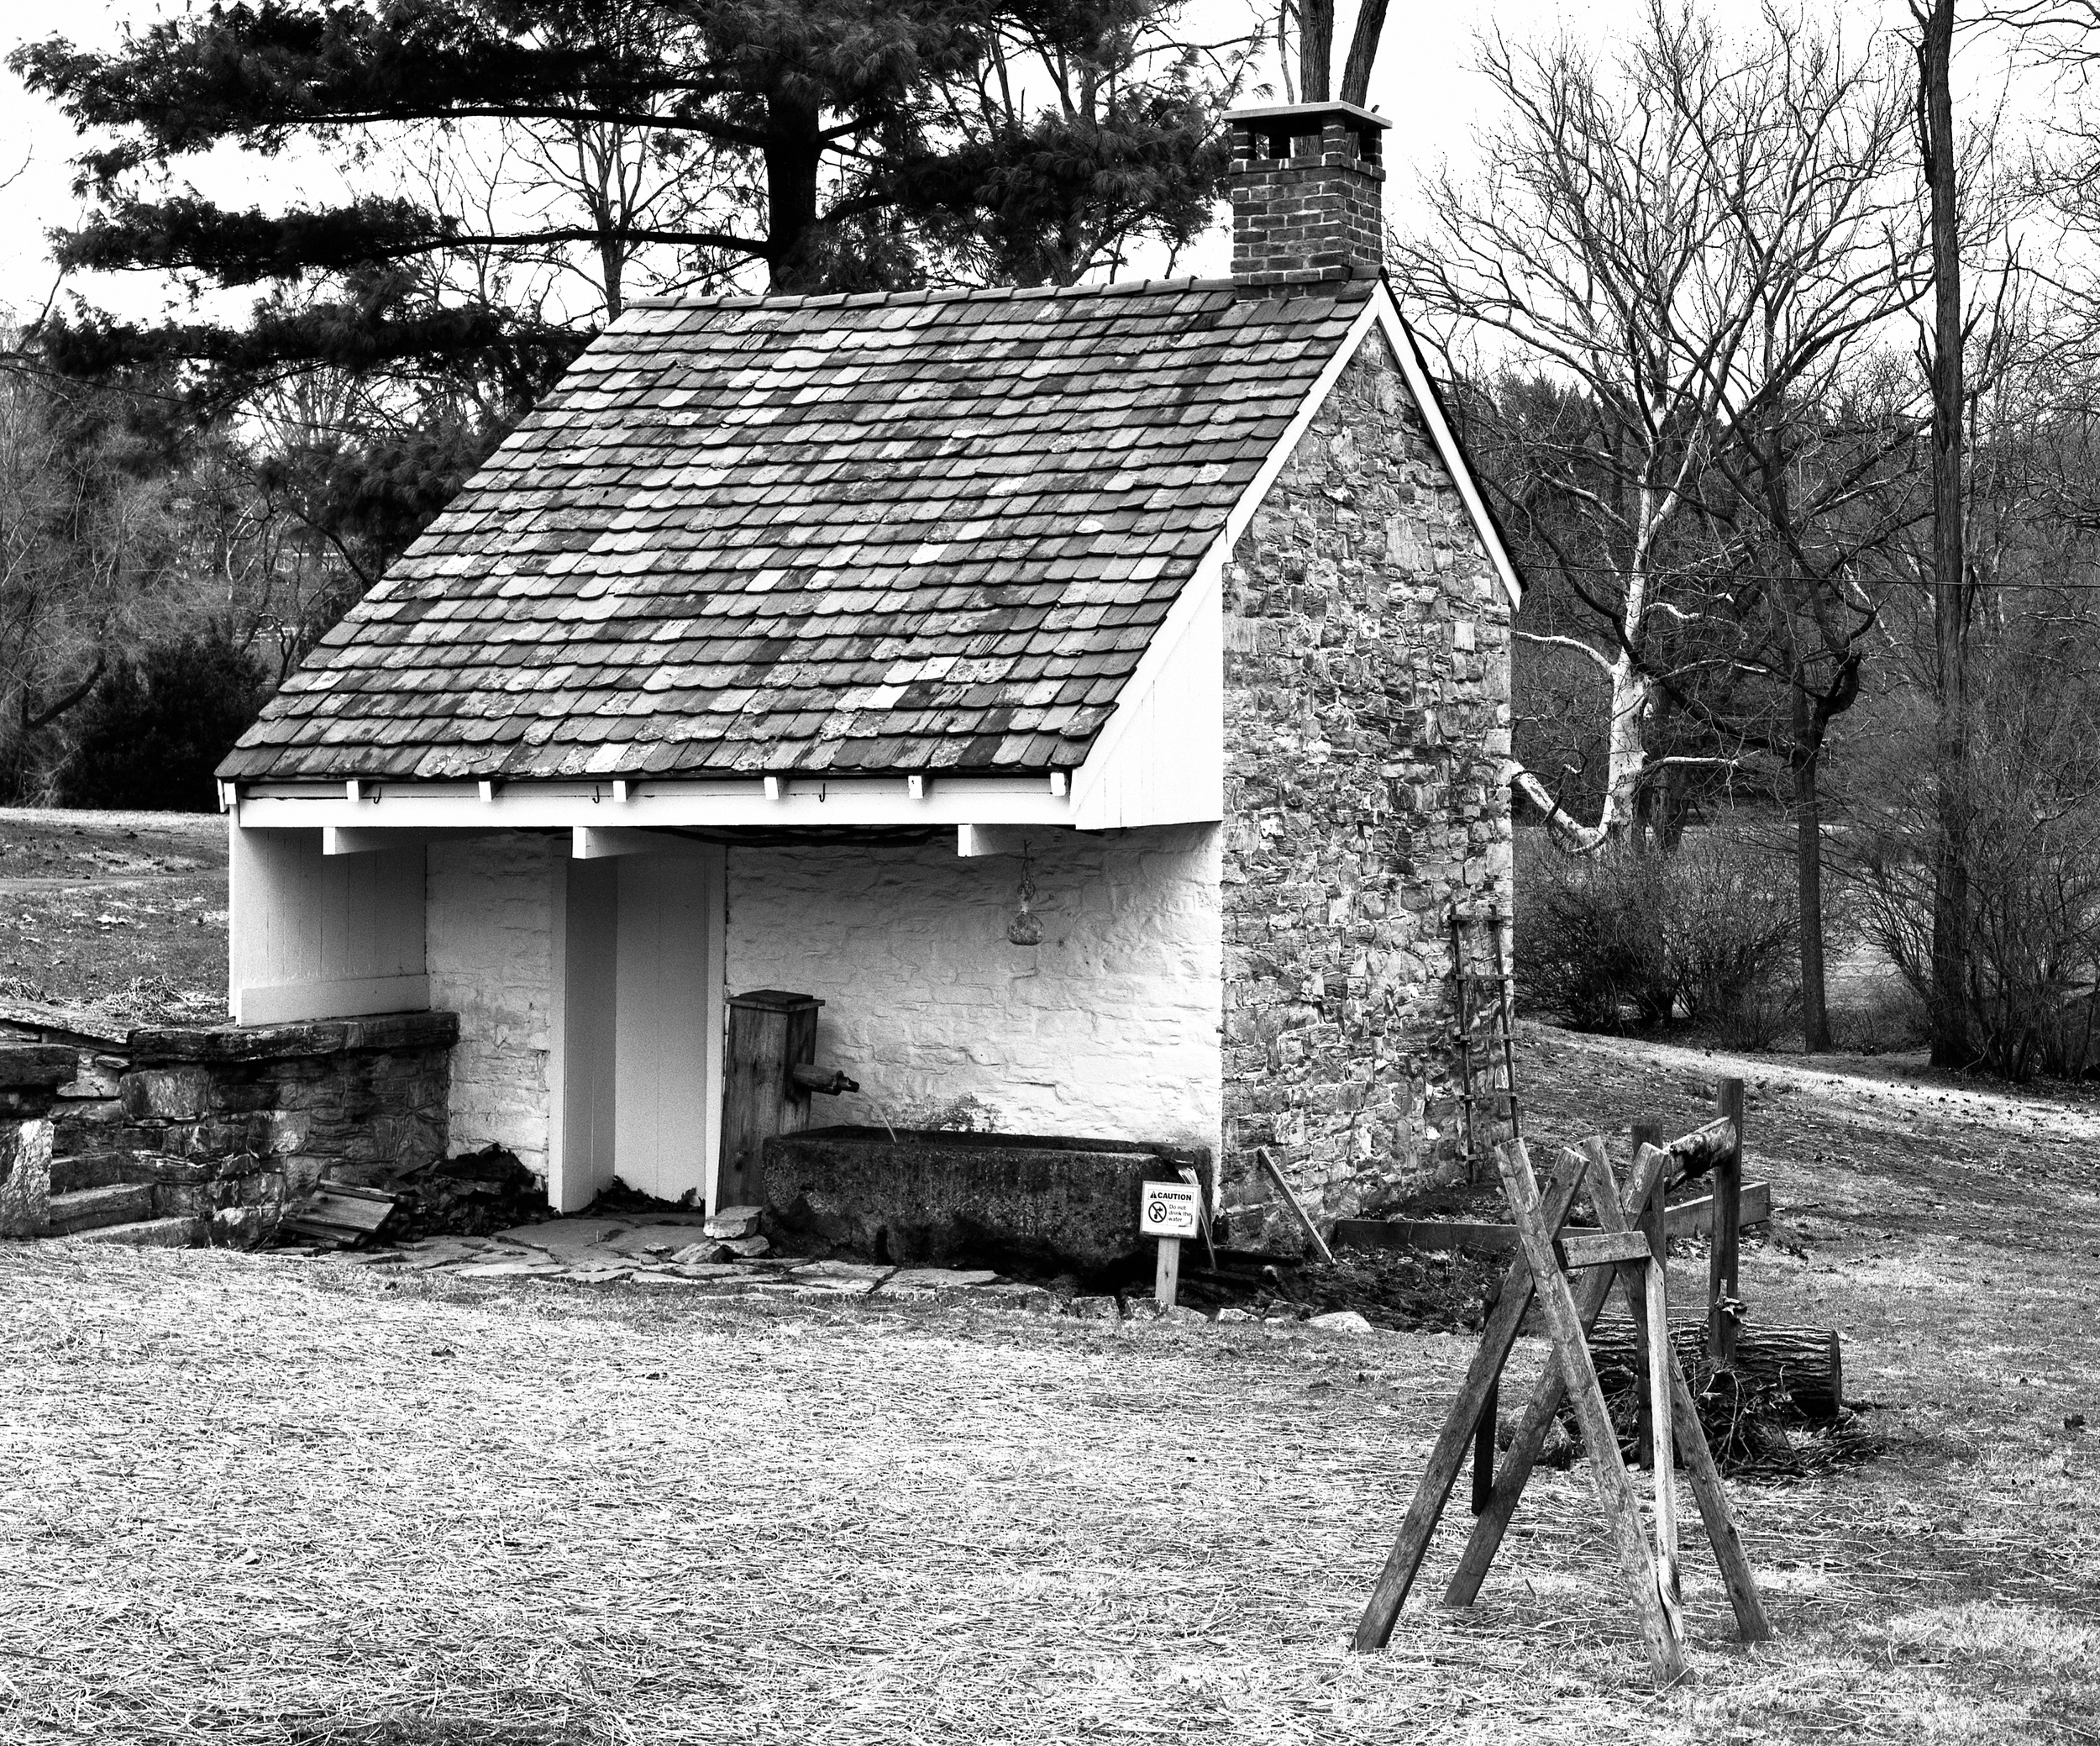 4x5_for_365_project_092_Conrad_Weiser_springhouse.jpg